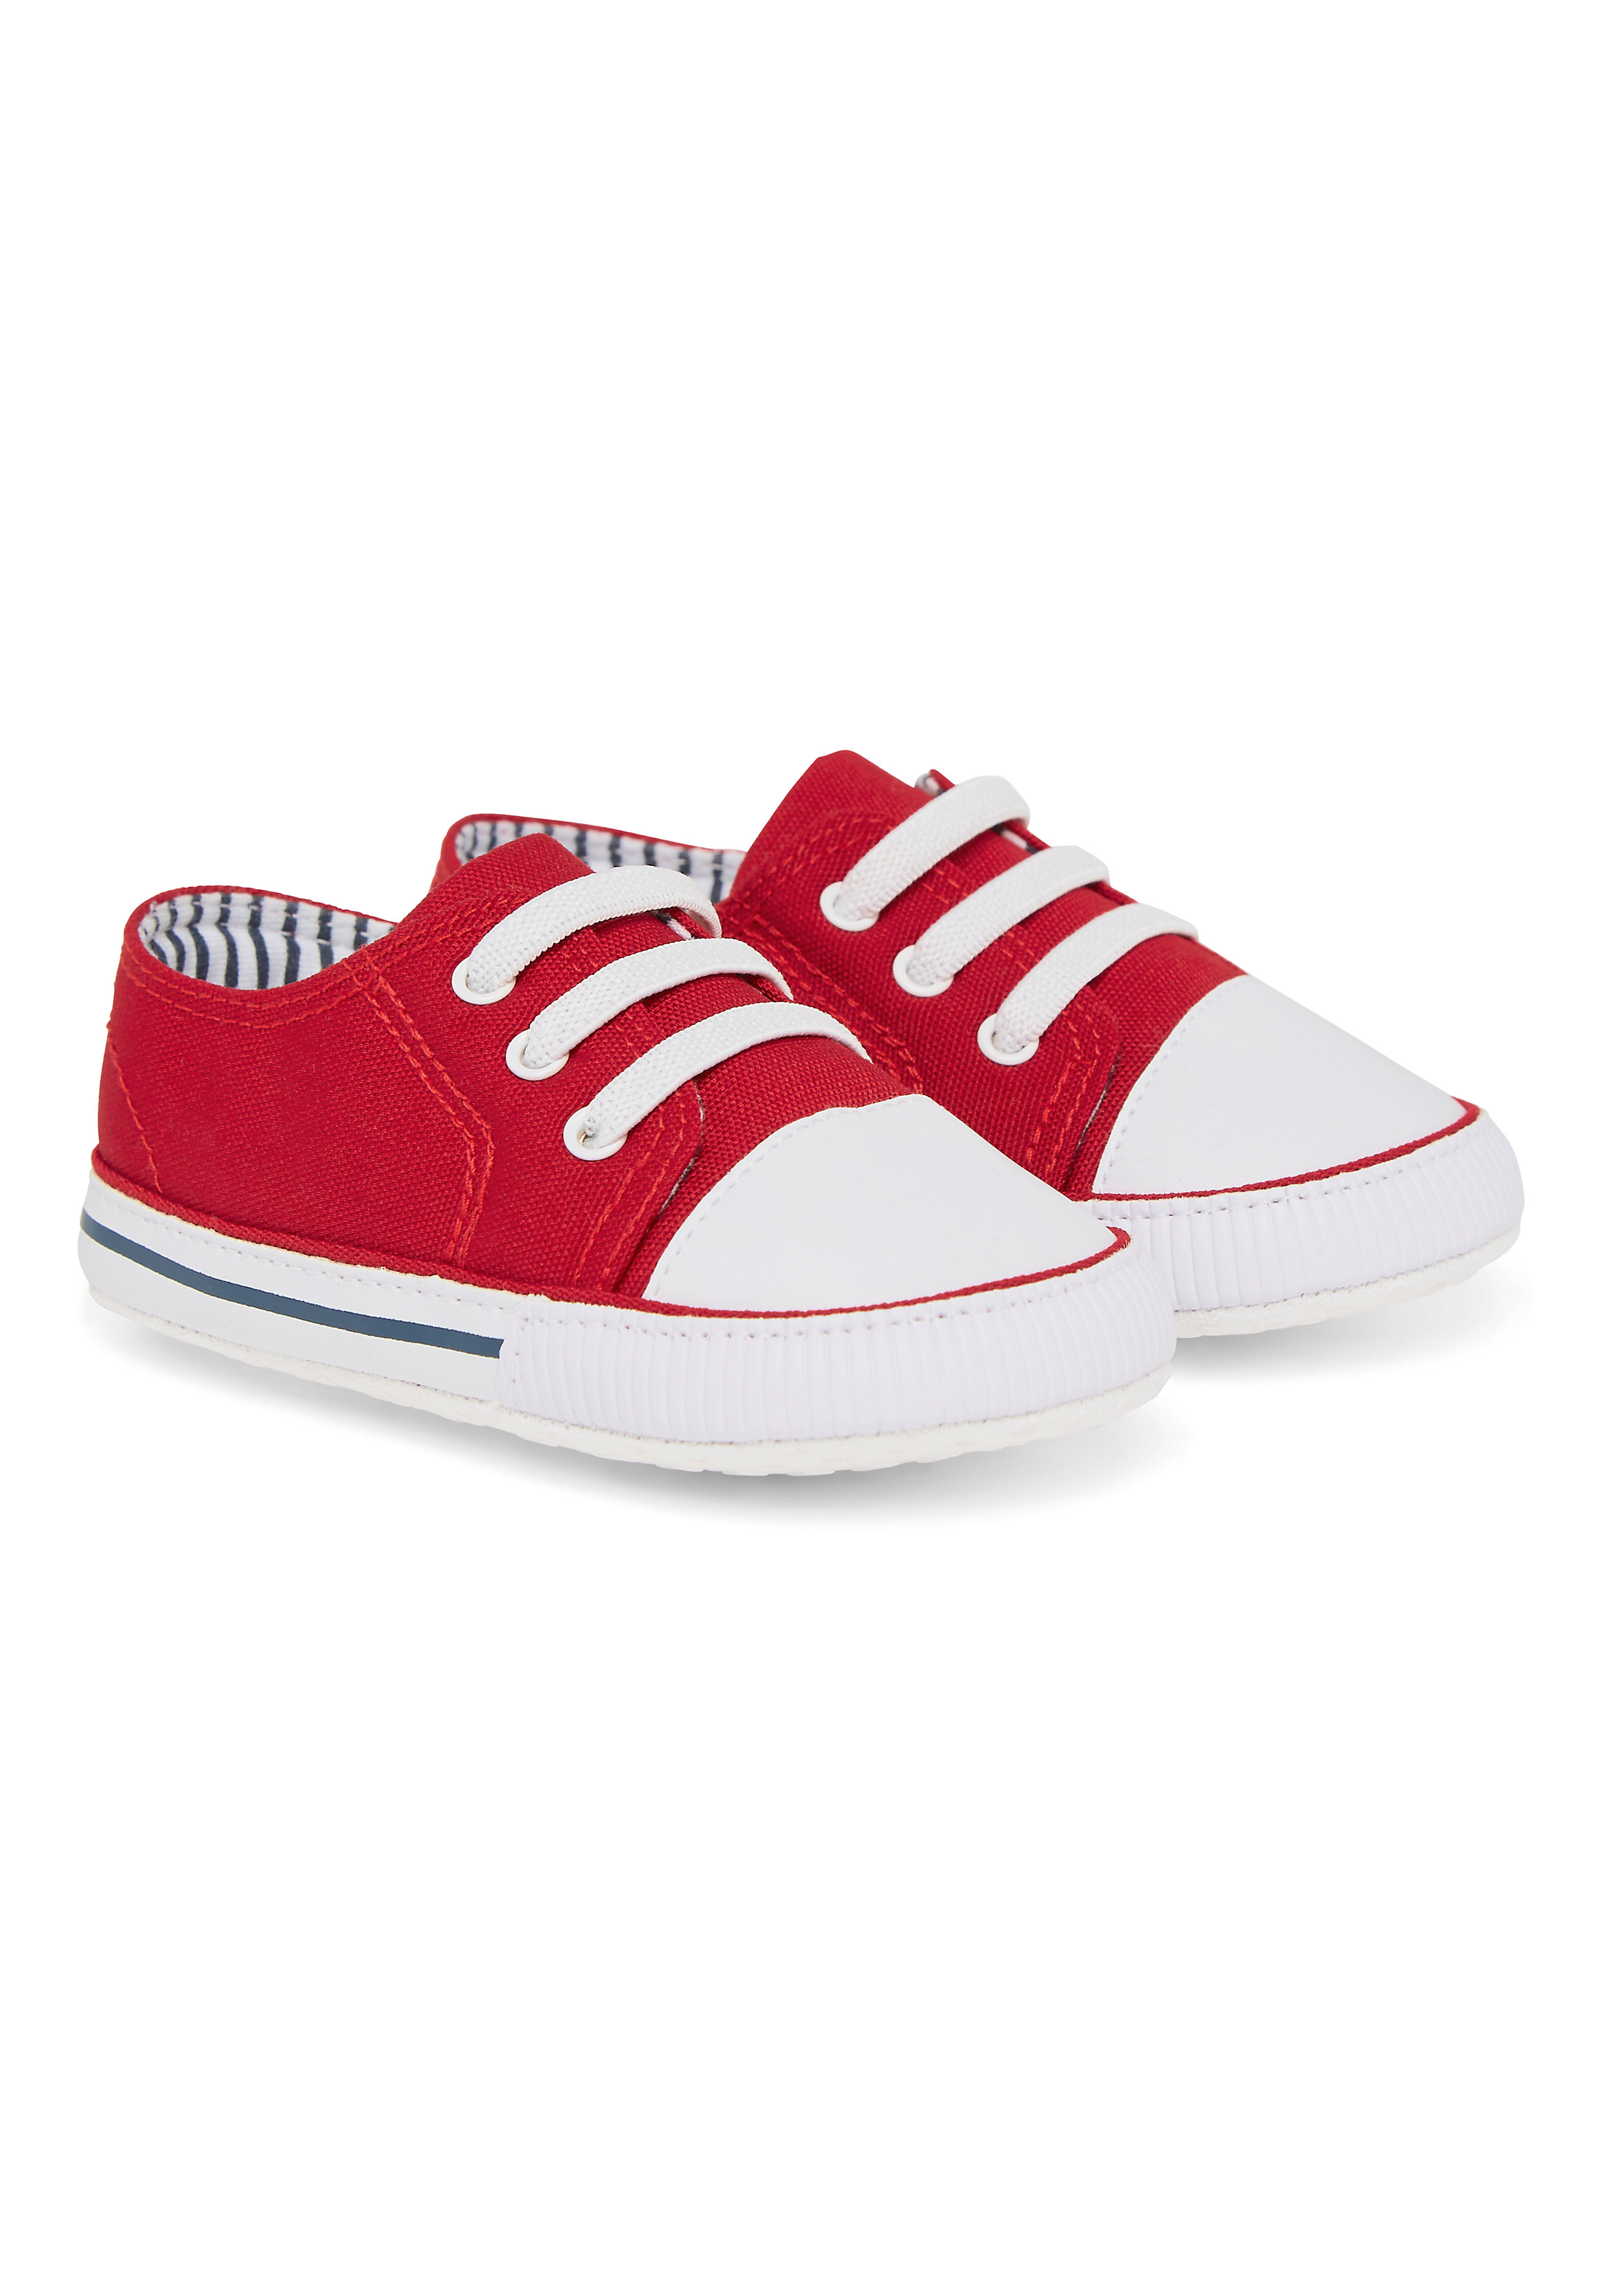 Mothercare   Boys Red Canvas Pram Shoes